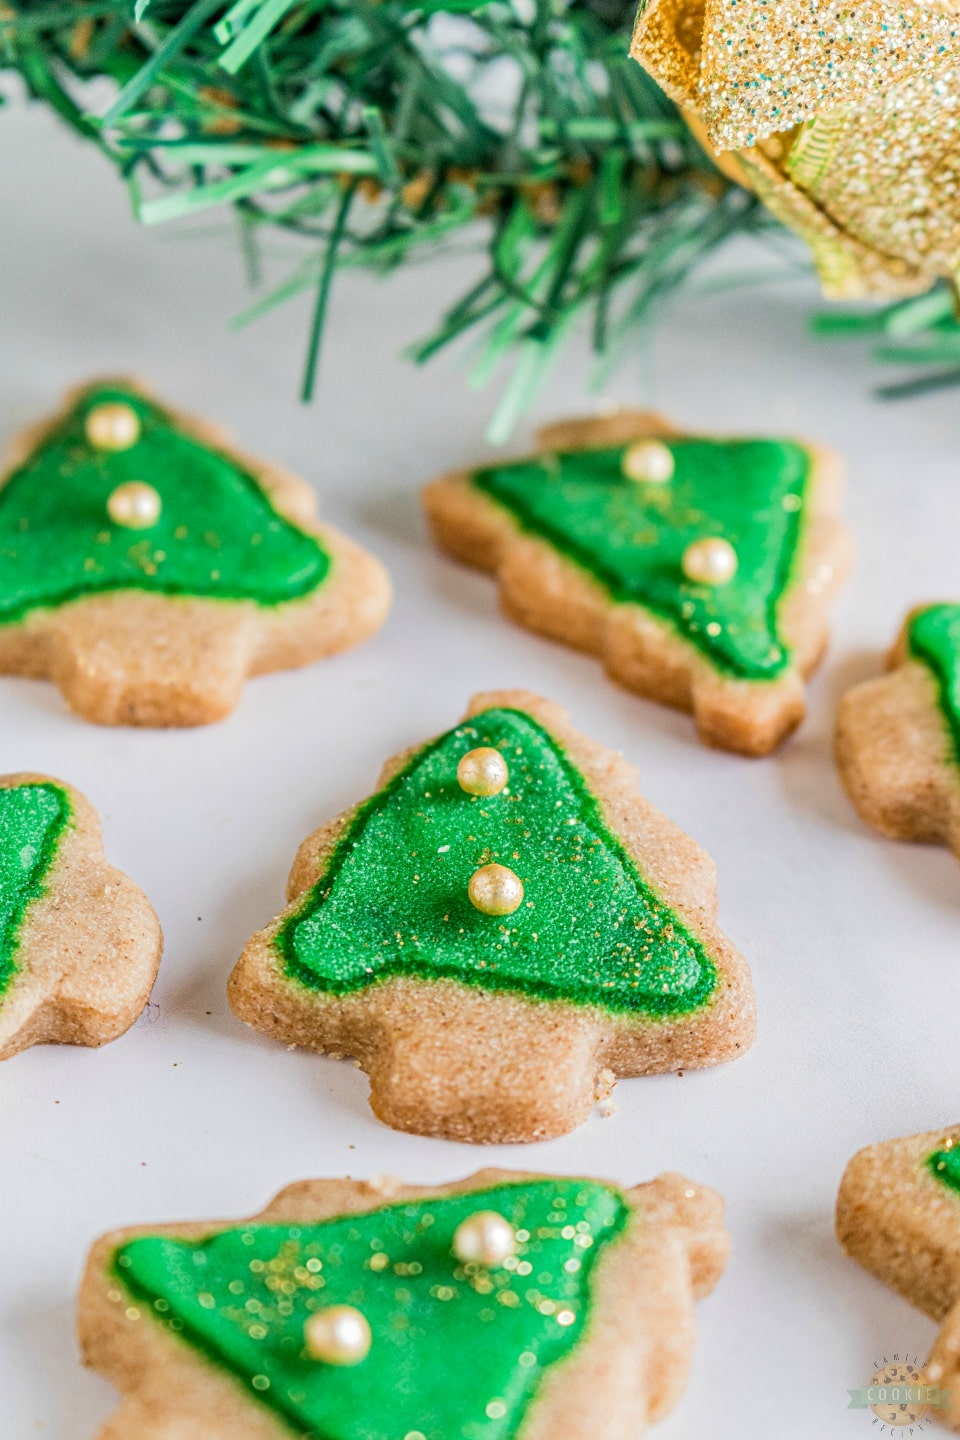 Spiced Christmas Shortbread Cookies